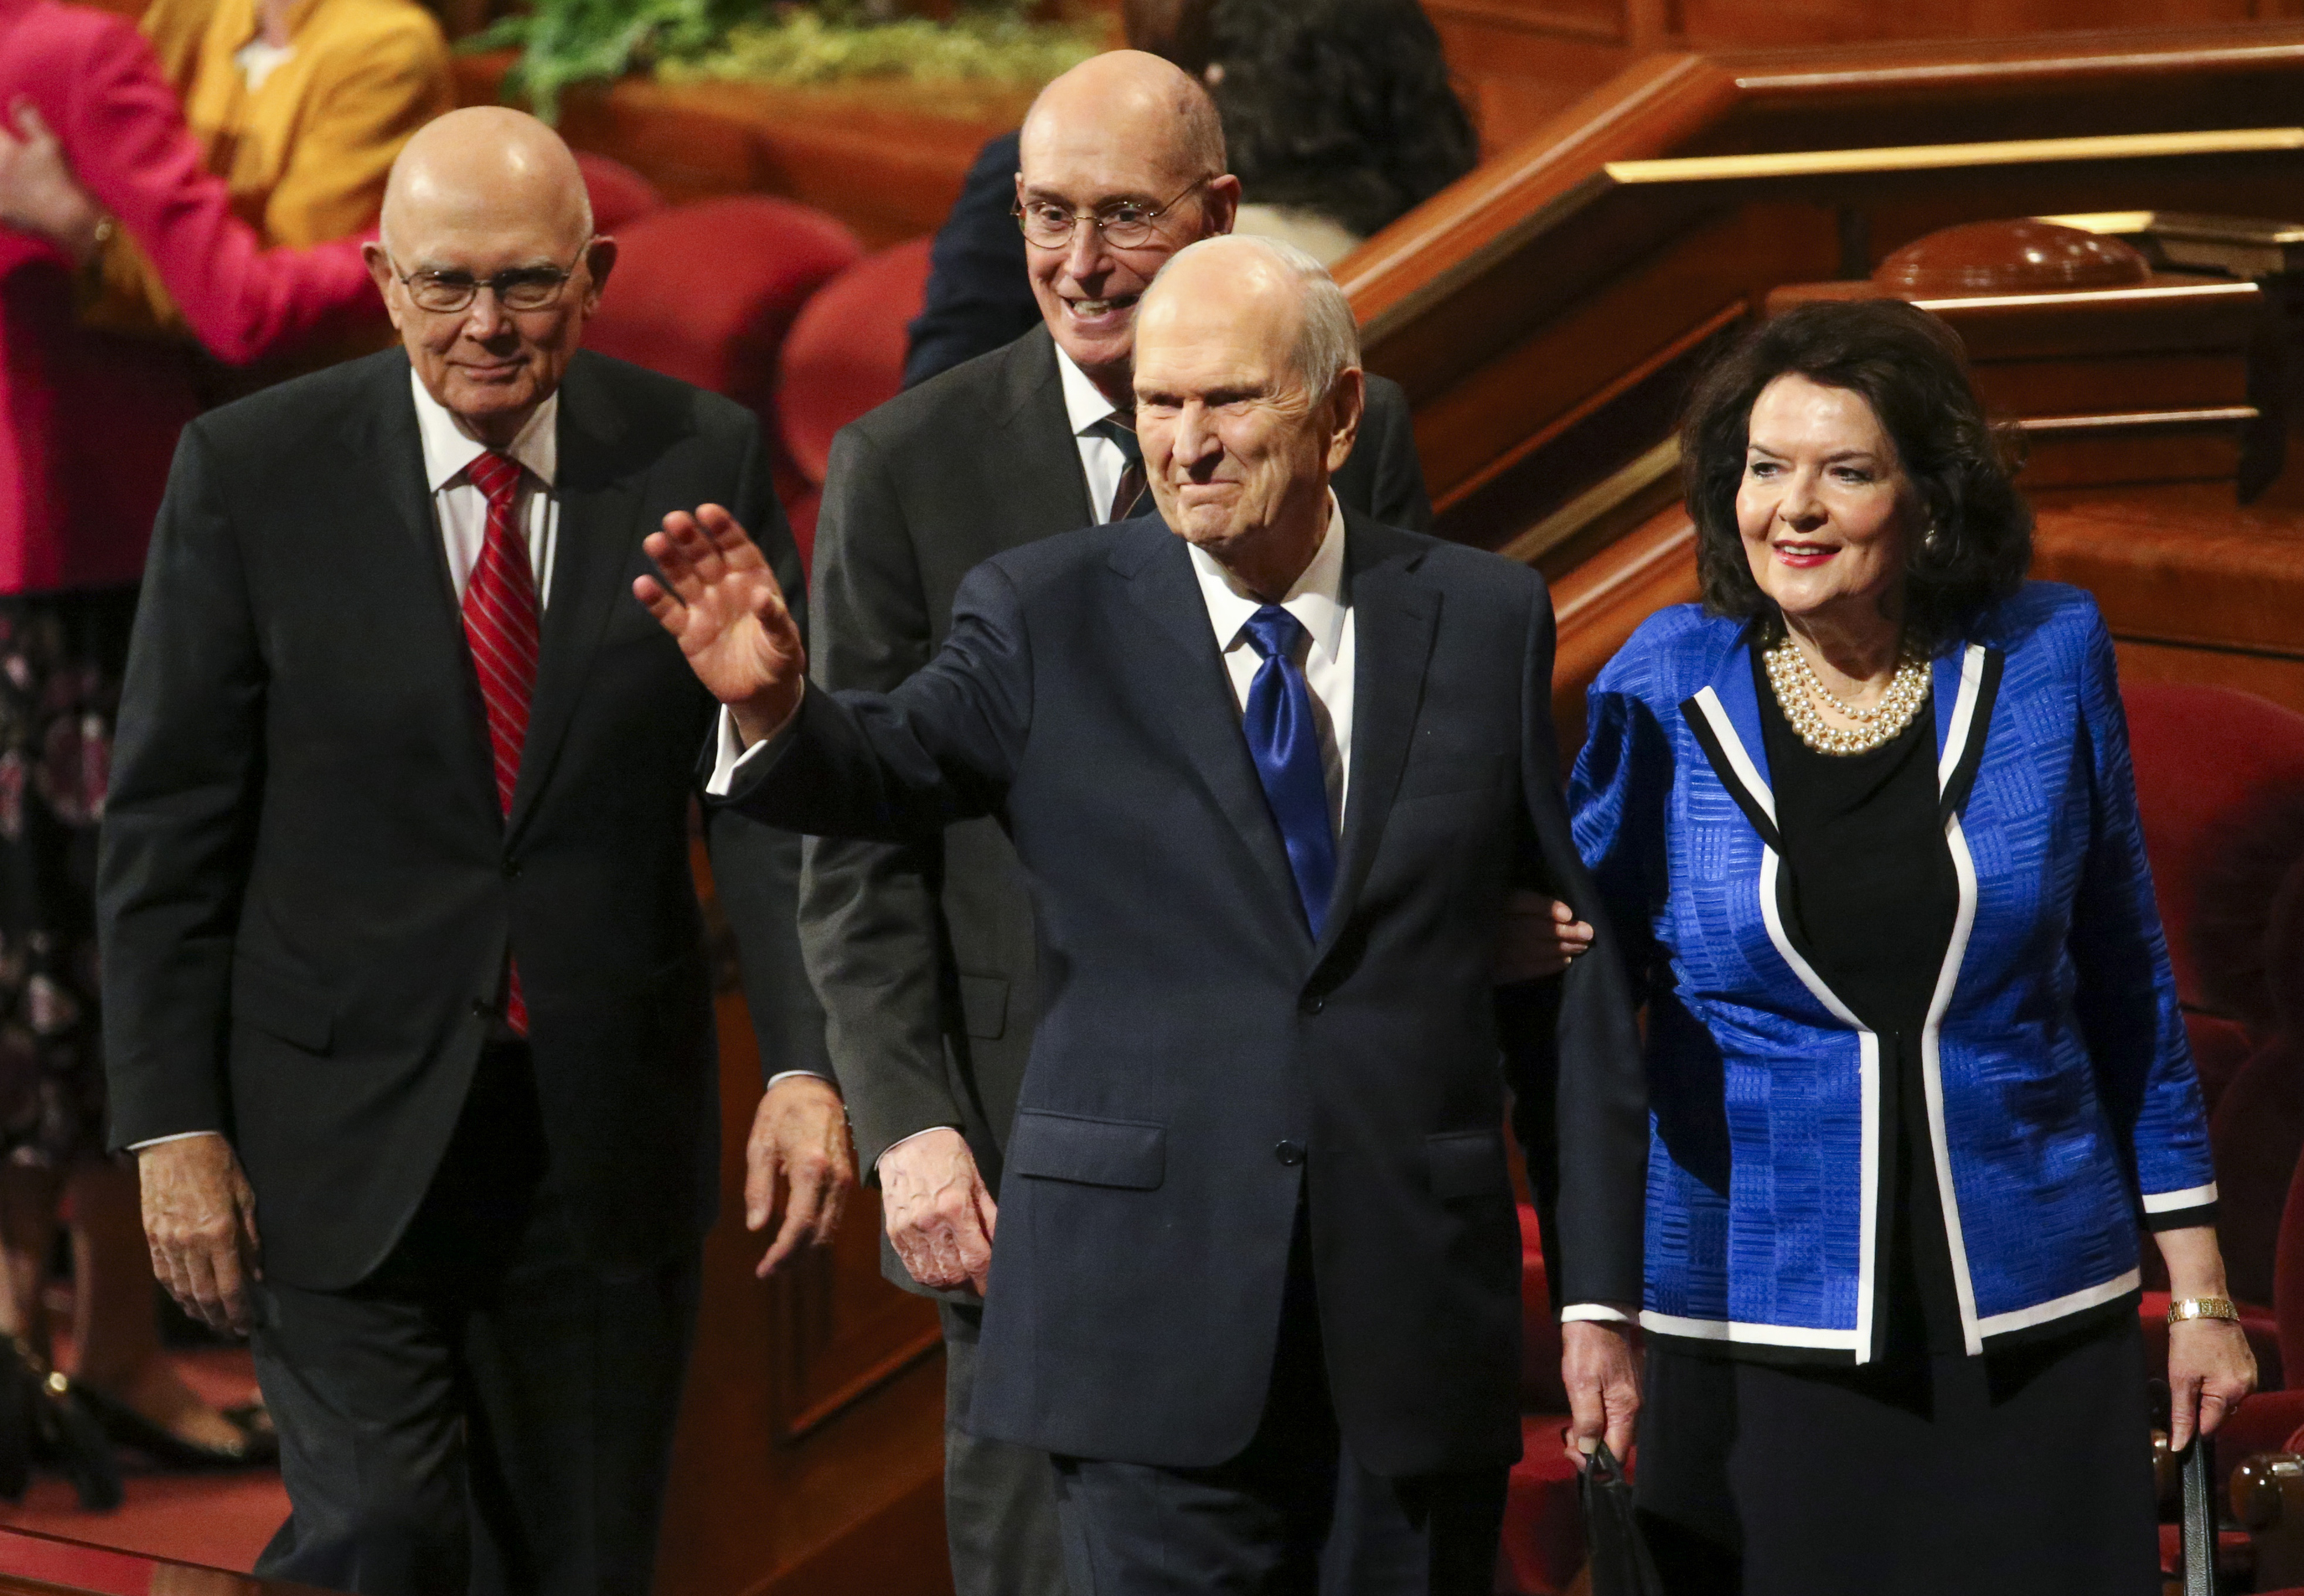 President Russell M. Nelson, center, waves at the crowd following the women's session of the 189th Semiannual General Conference of The Church of Jesus Christ of Latter-day Saints at the Conference Center in Salt Lake City on Saturday, Oct. 5, 2019. Behind him are President Dallin H. Oaks, first counselor in the First Presidency, left, and President Henry B. Eyring, second counselor in the First Presidency, and on the right is Sister Wendy Nelson, President Nelson's wife.